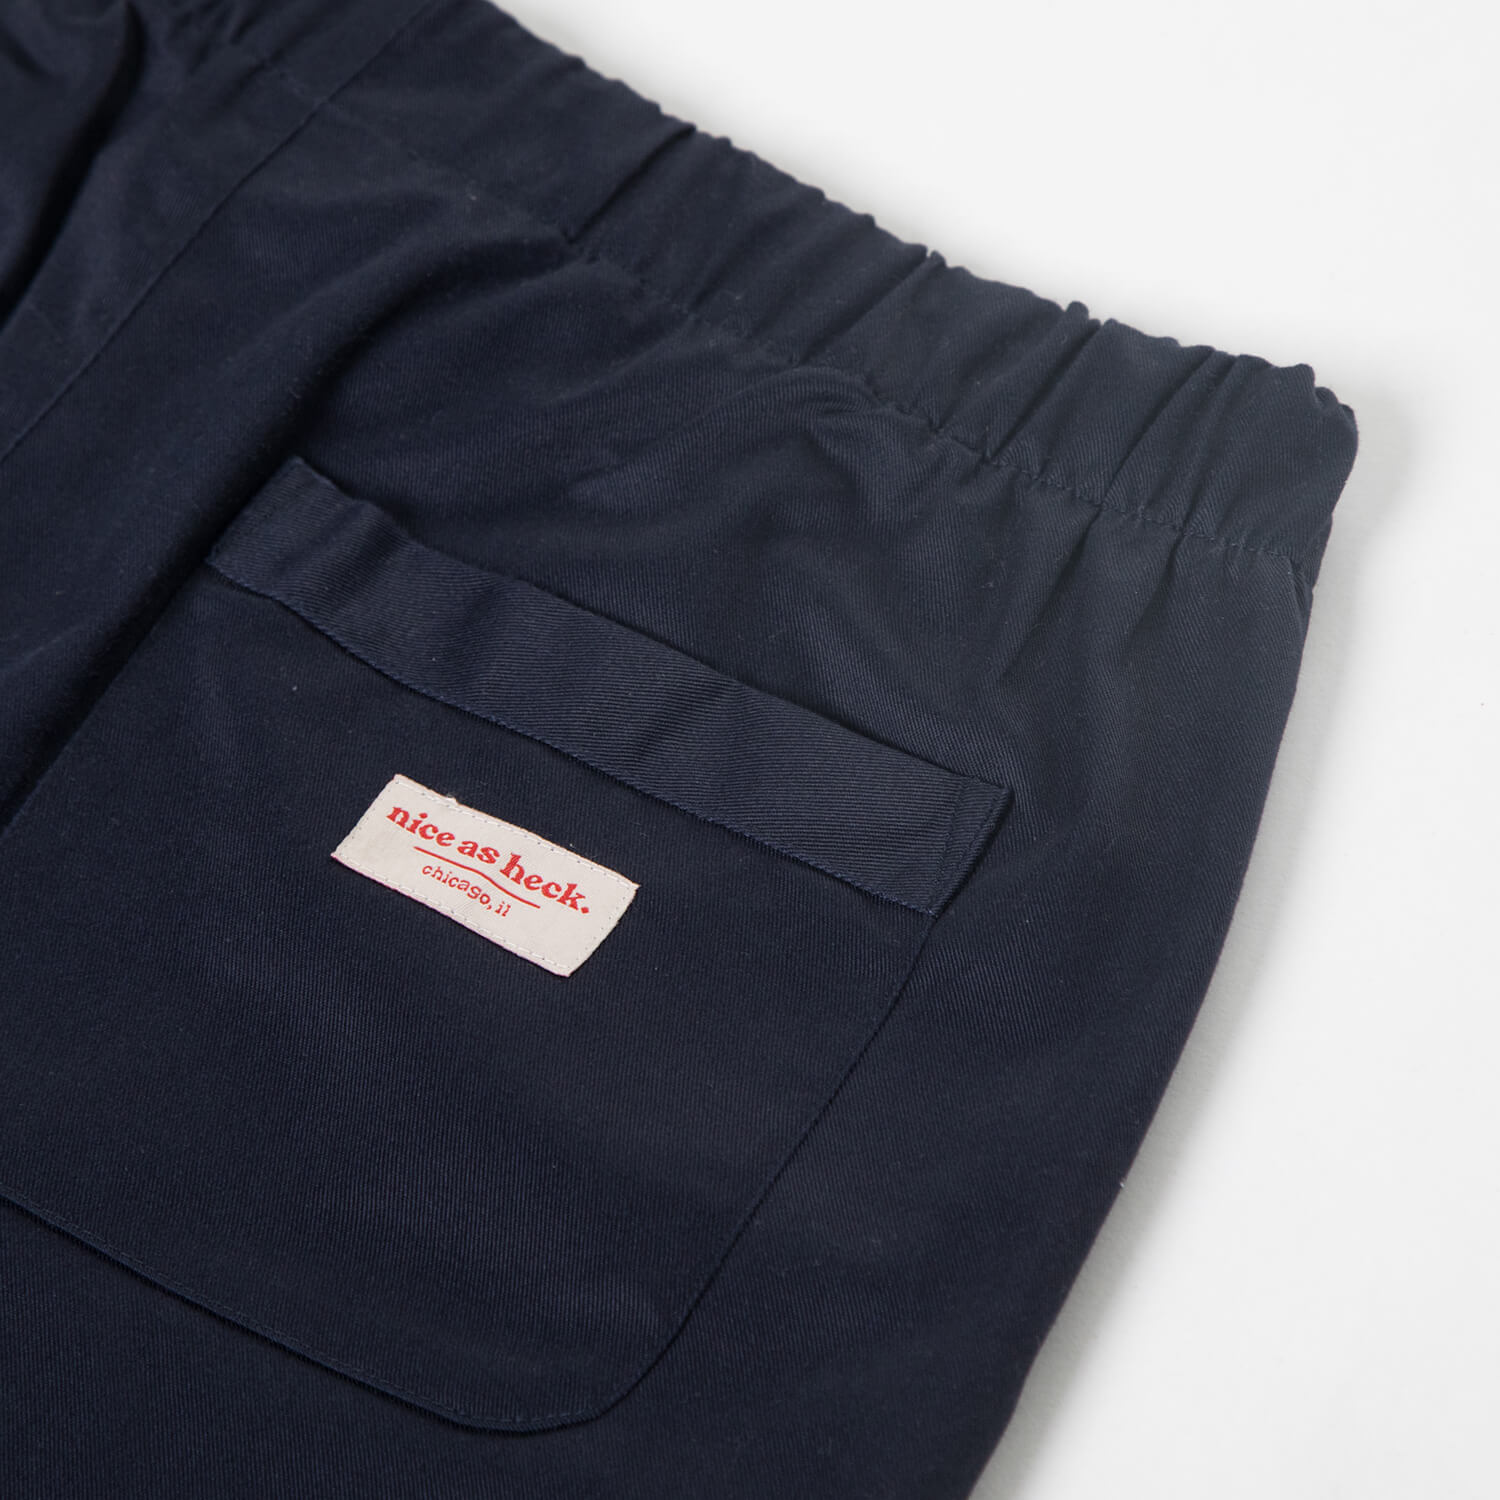 utility pants close up